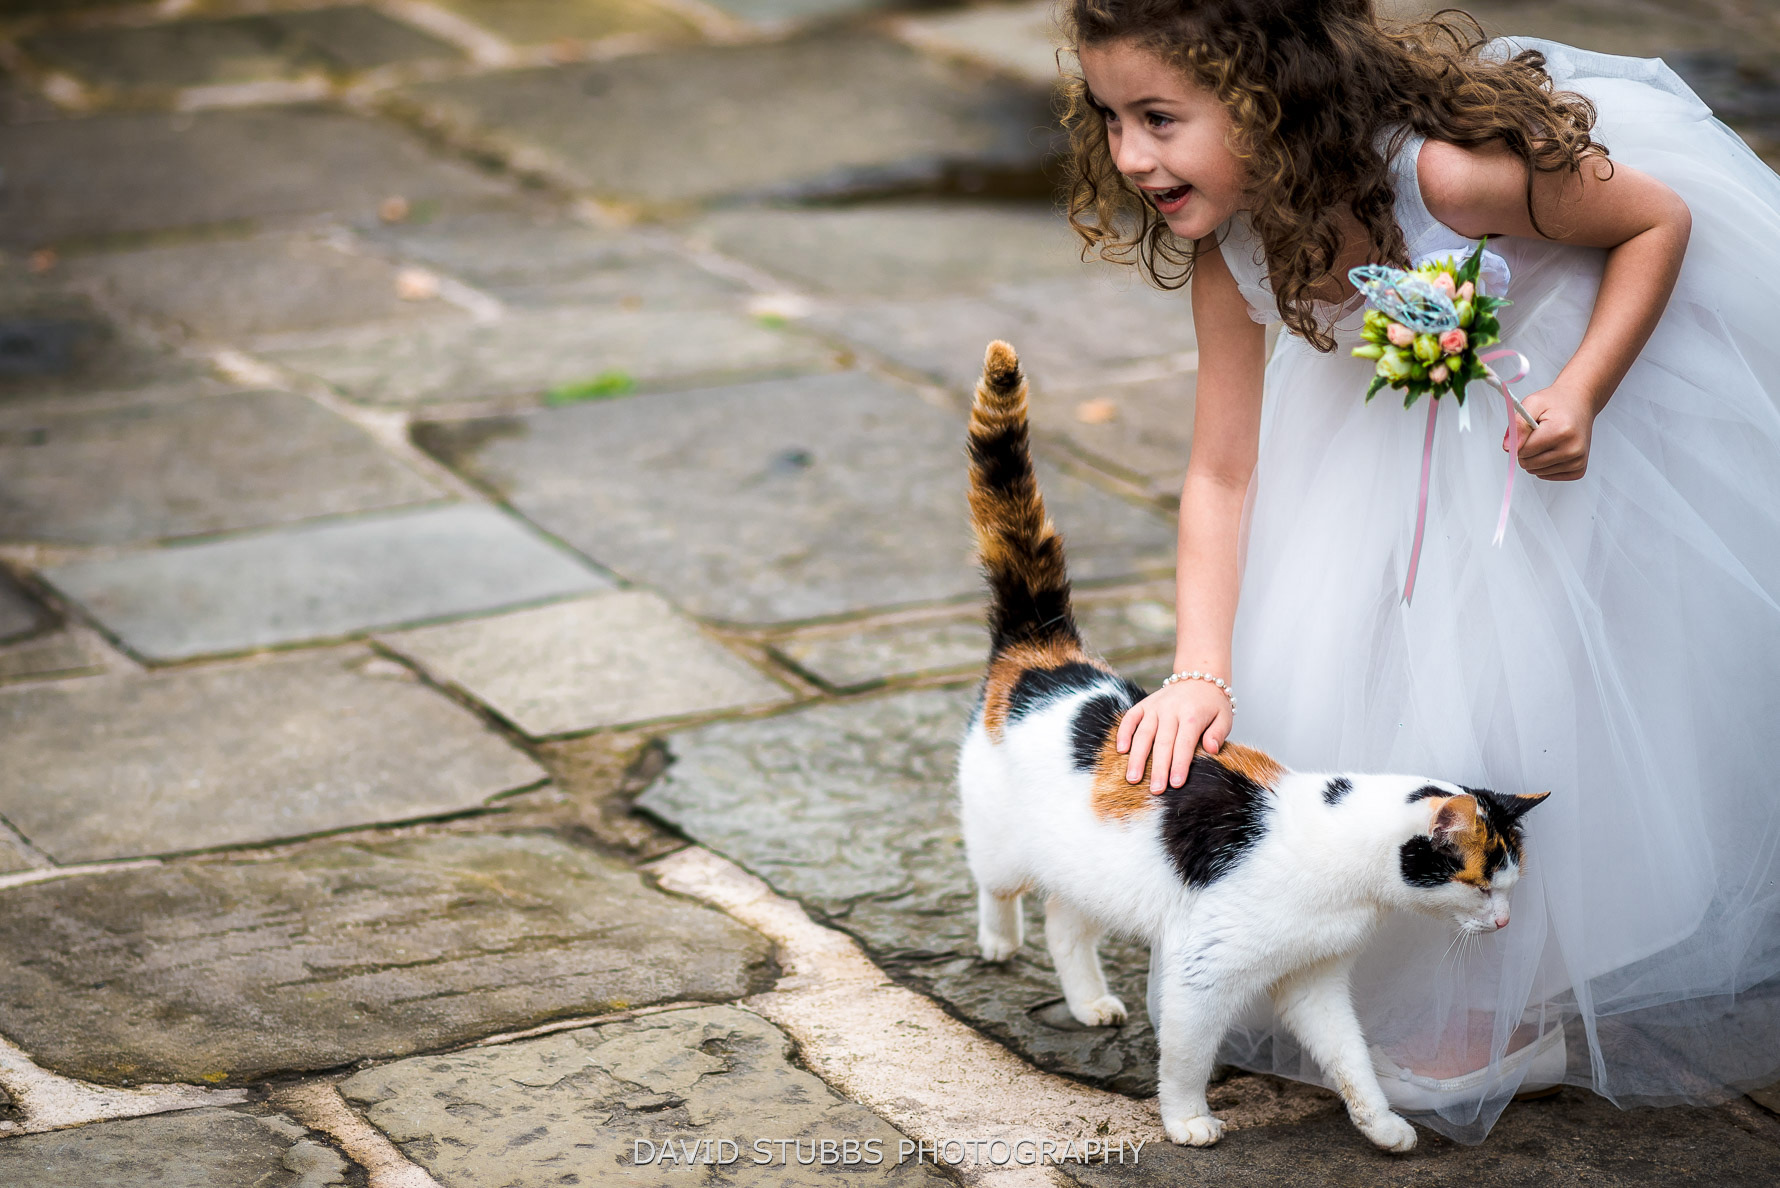 flowers and cat at wedding